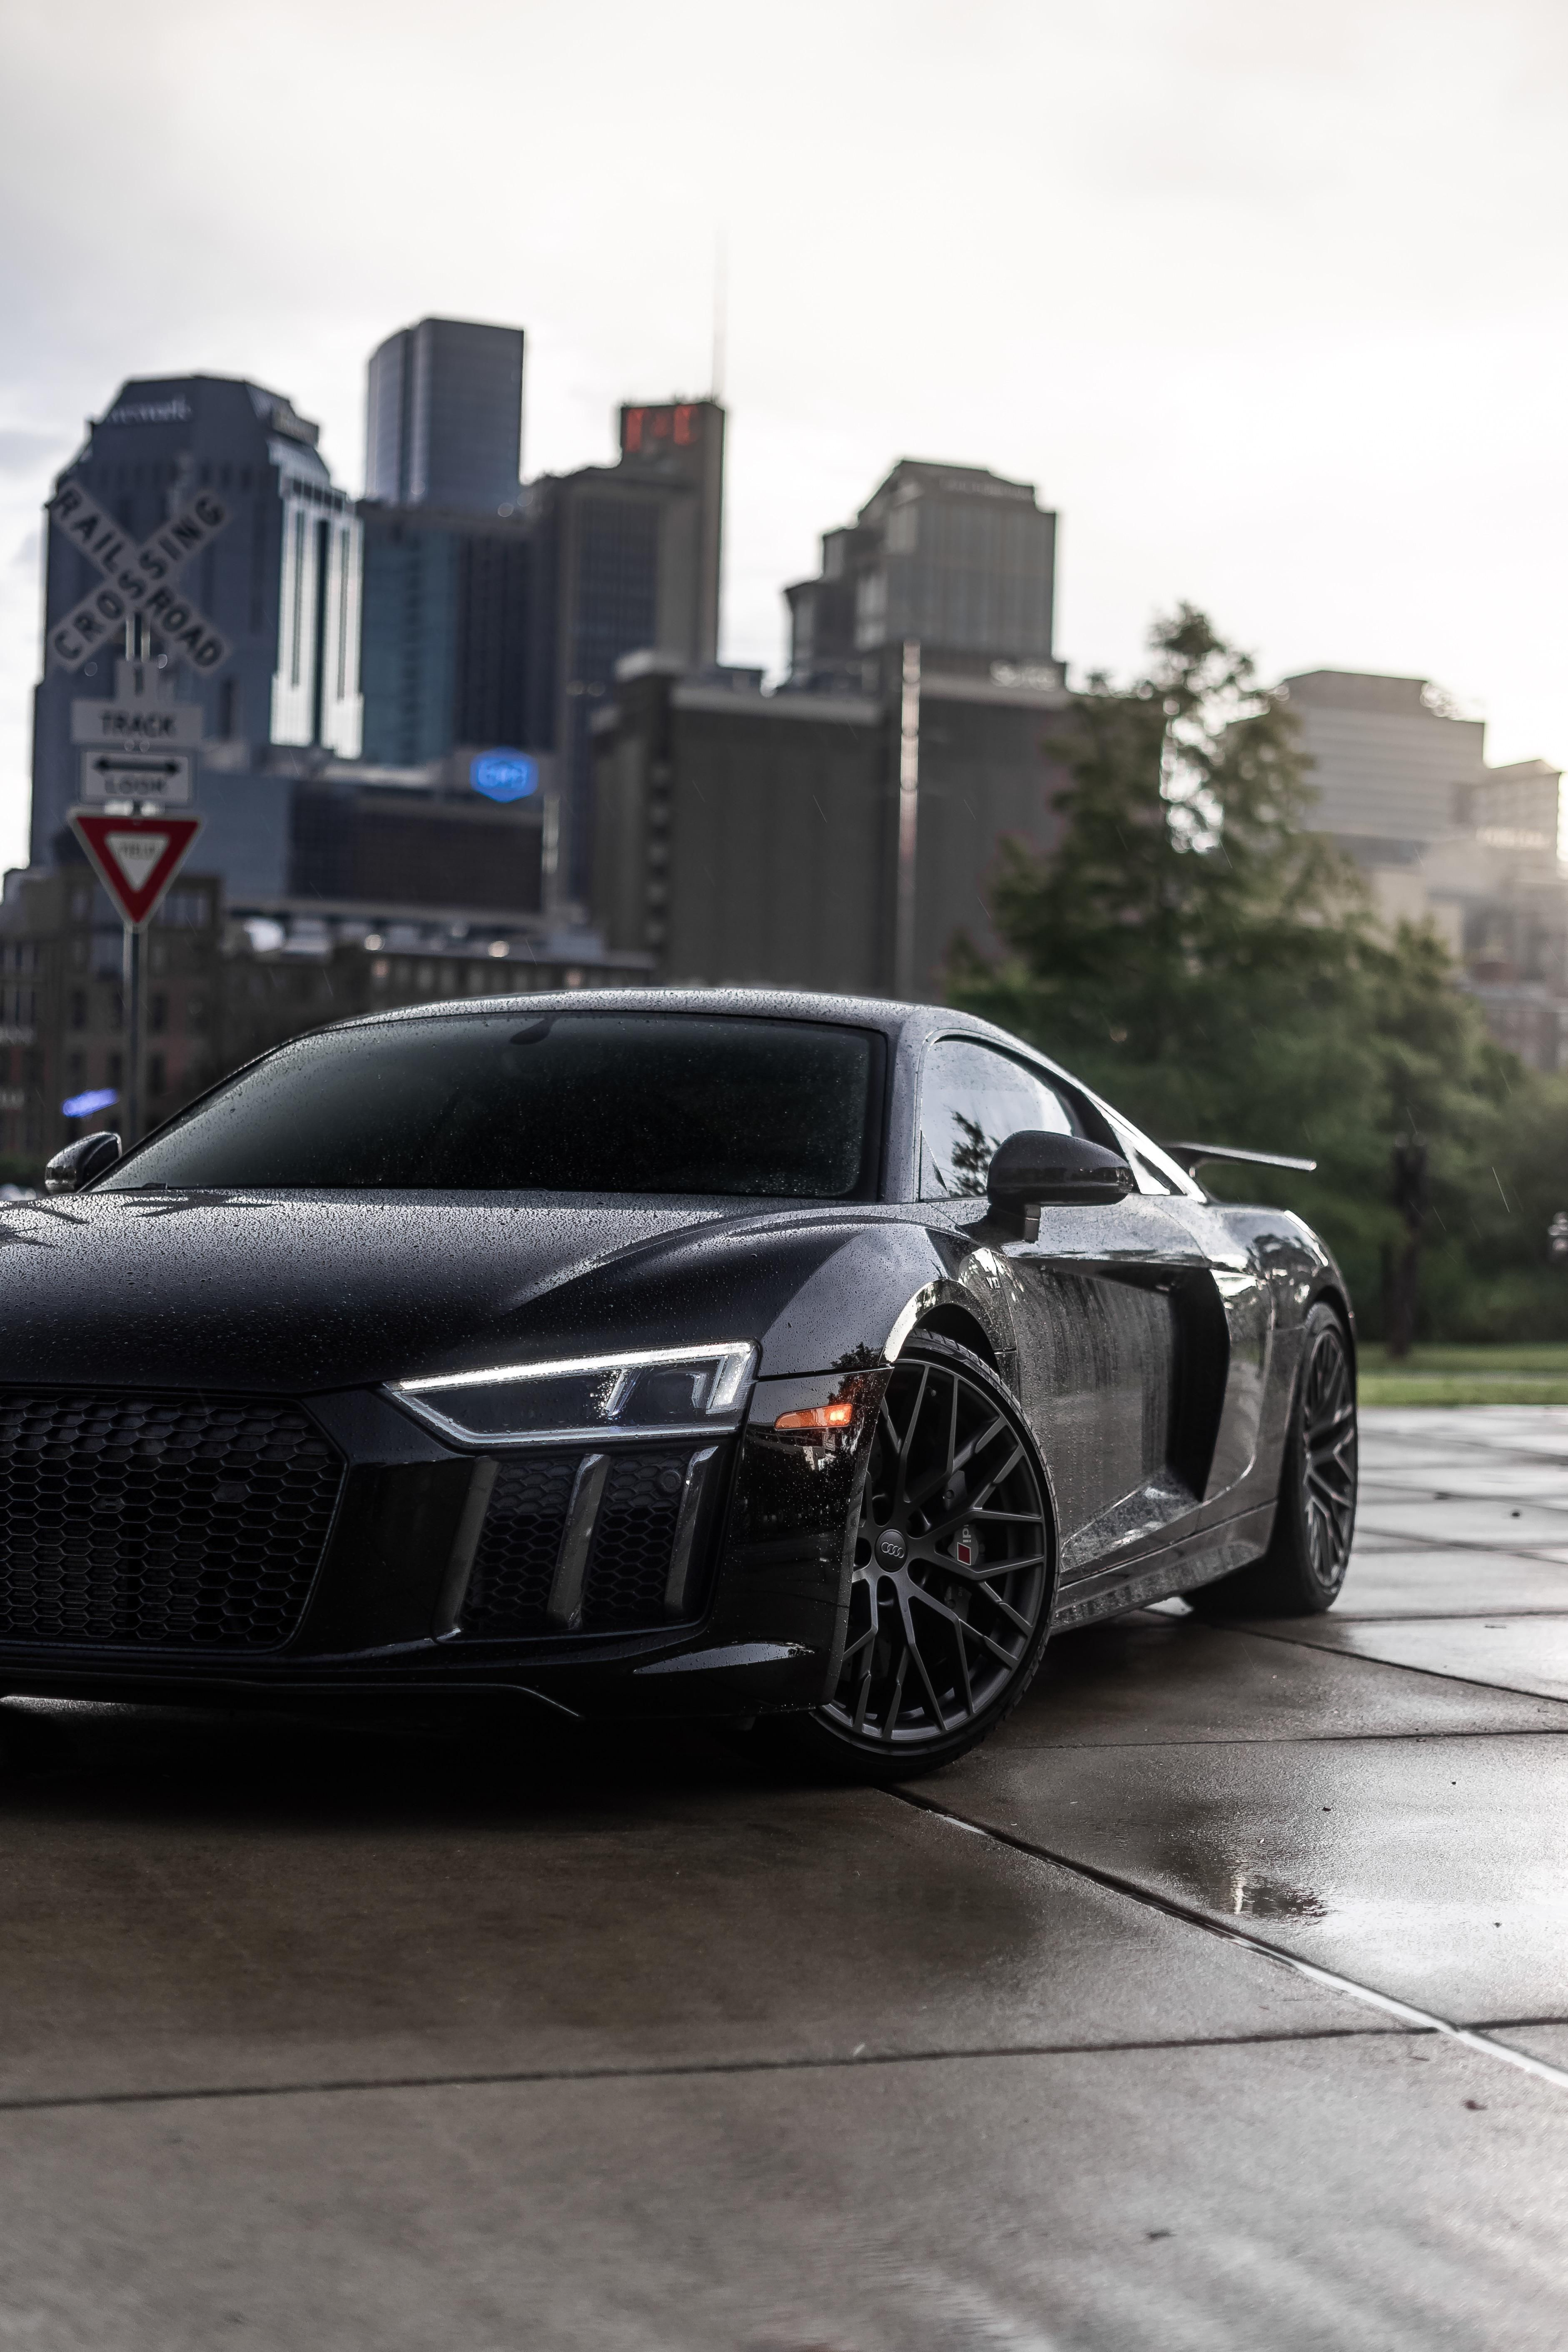 Audi R8 V10 Plus Did A Photoshoot With It In The Rain Last Night Audi R8 V10 Plus Audi R8 V10 Audi R8 Wallpaper